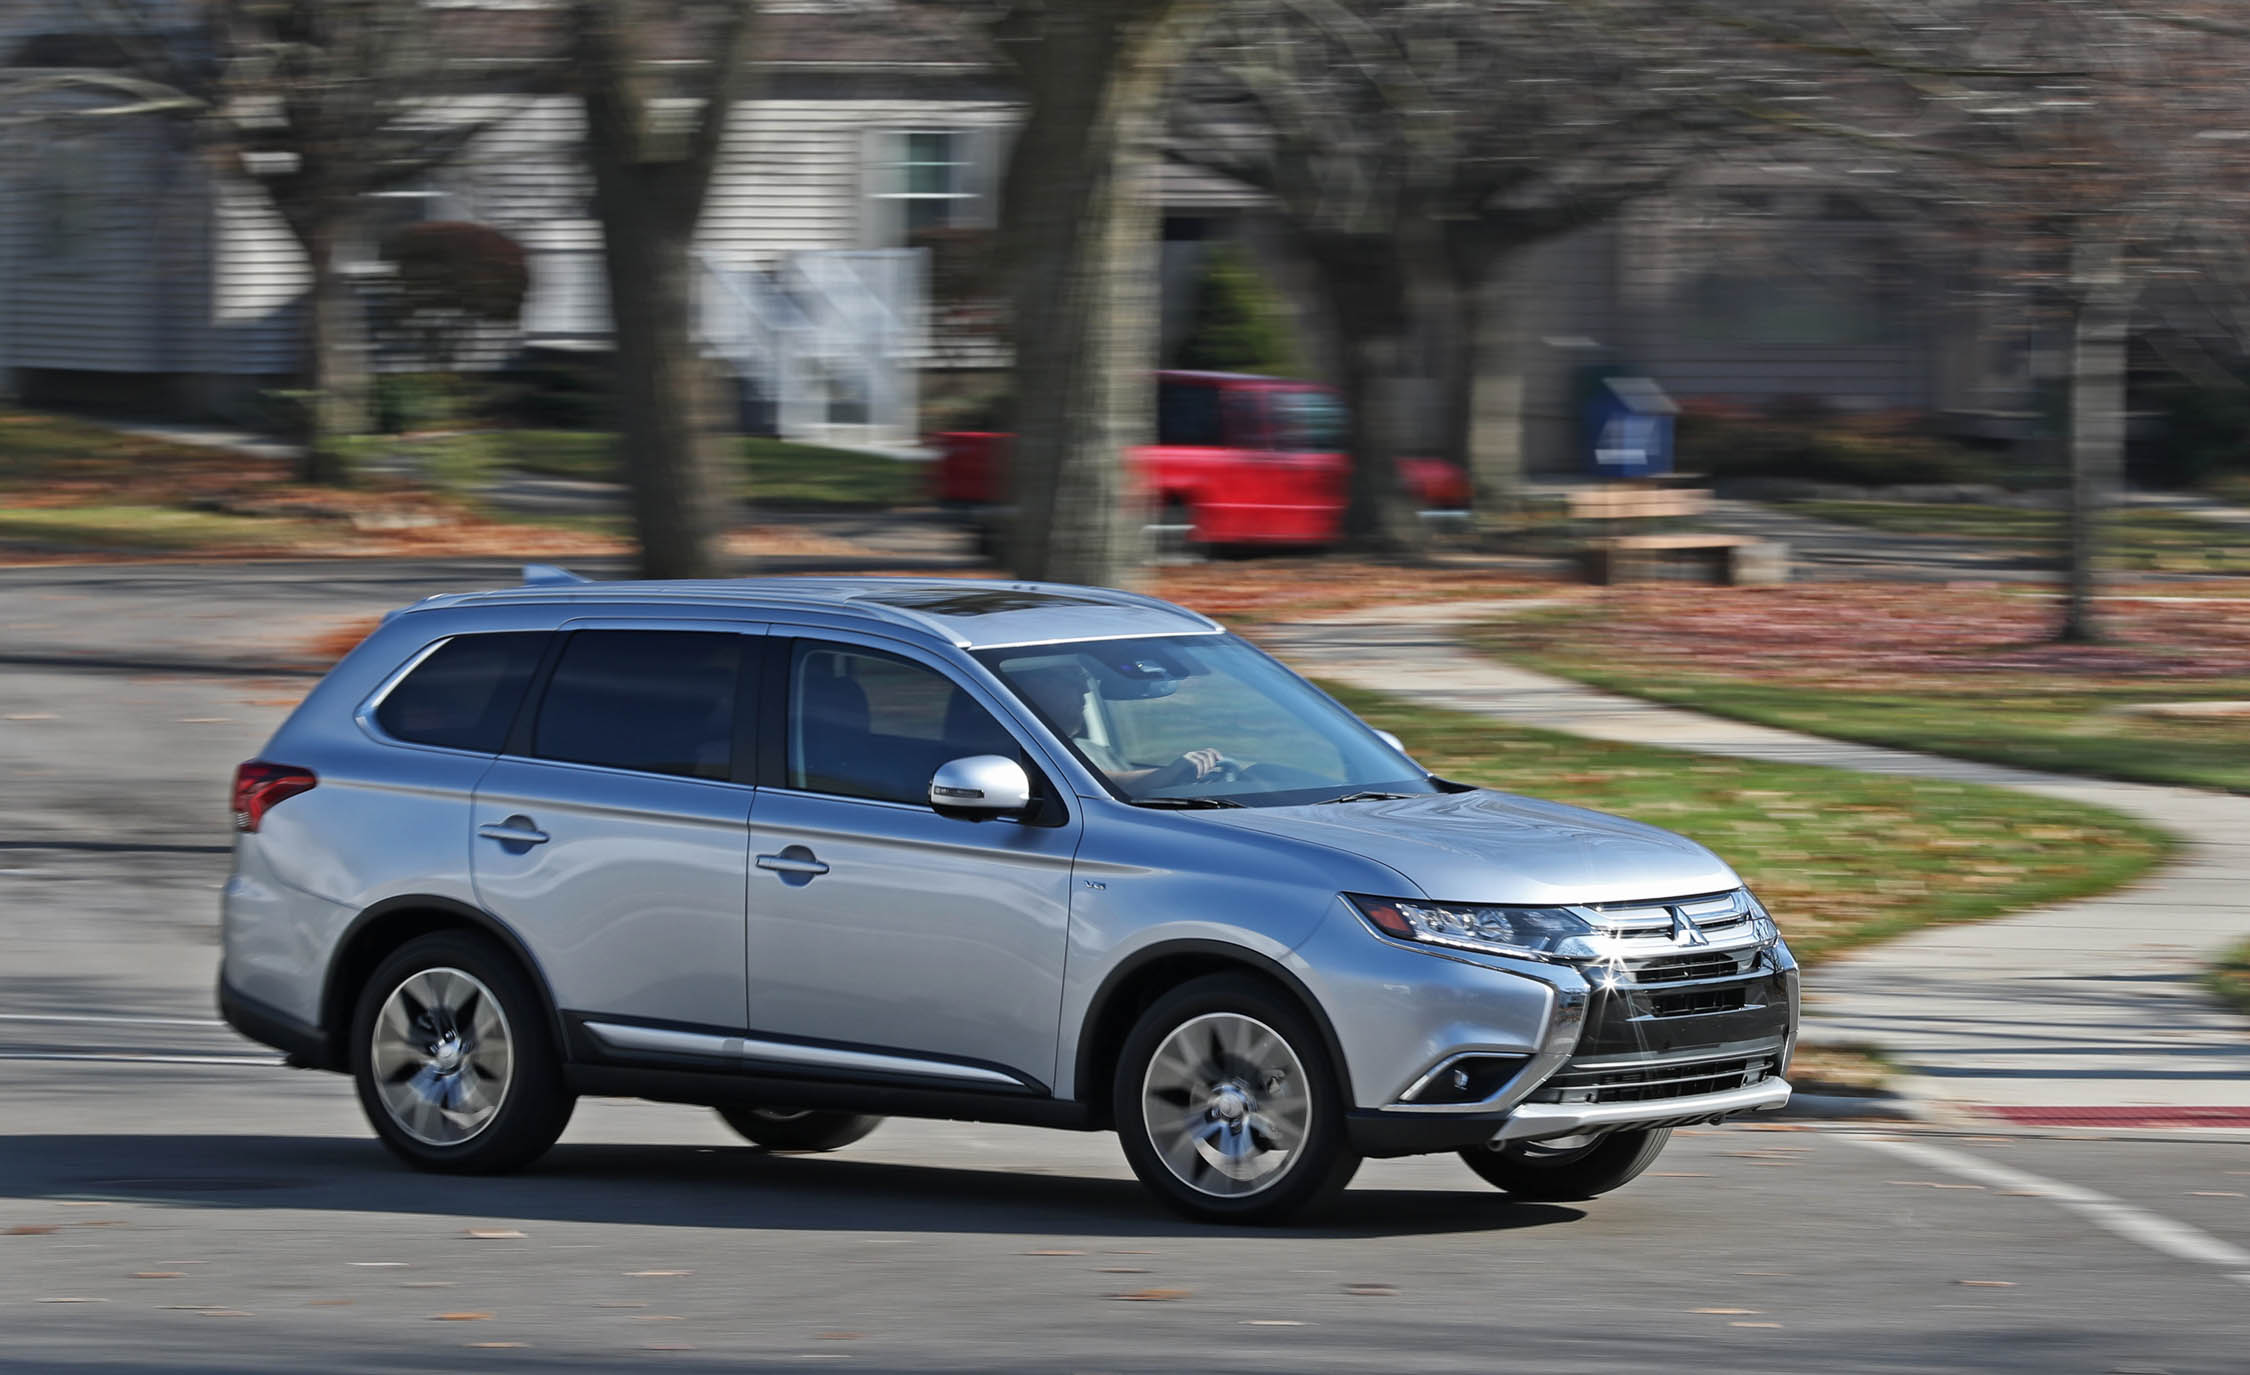 2017 Mitsubishi Outlander Gt Test Drive Front And Side View (View 16 of 34)